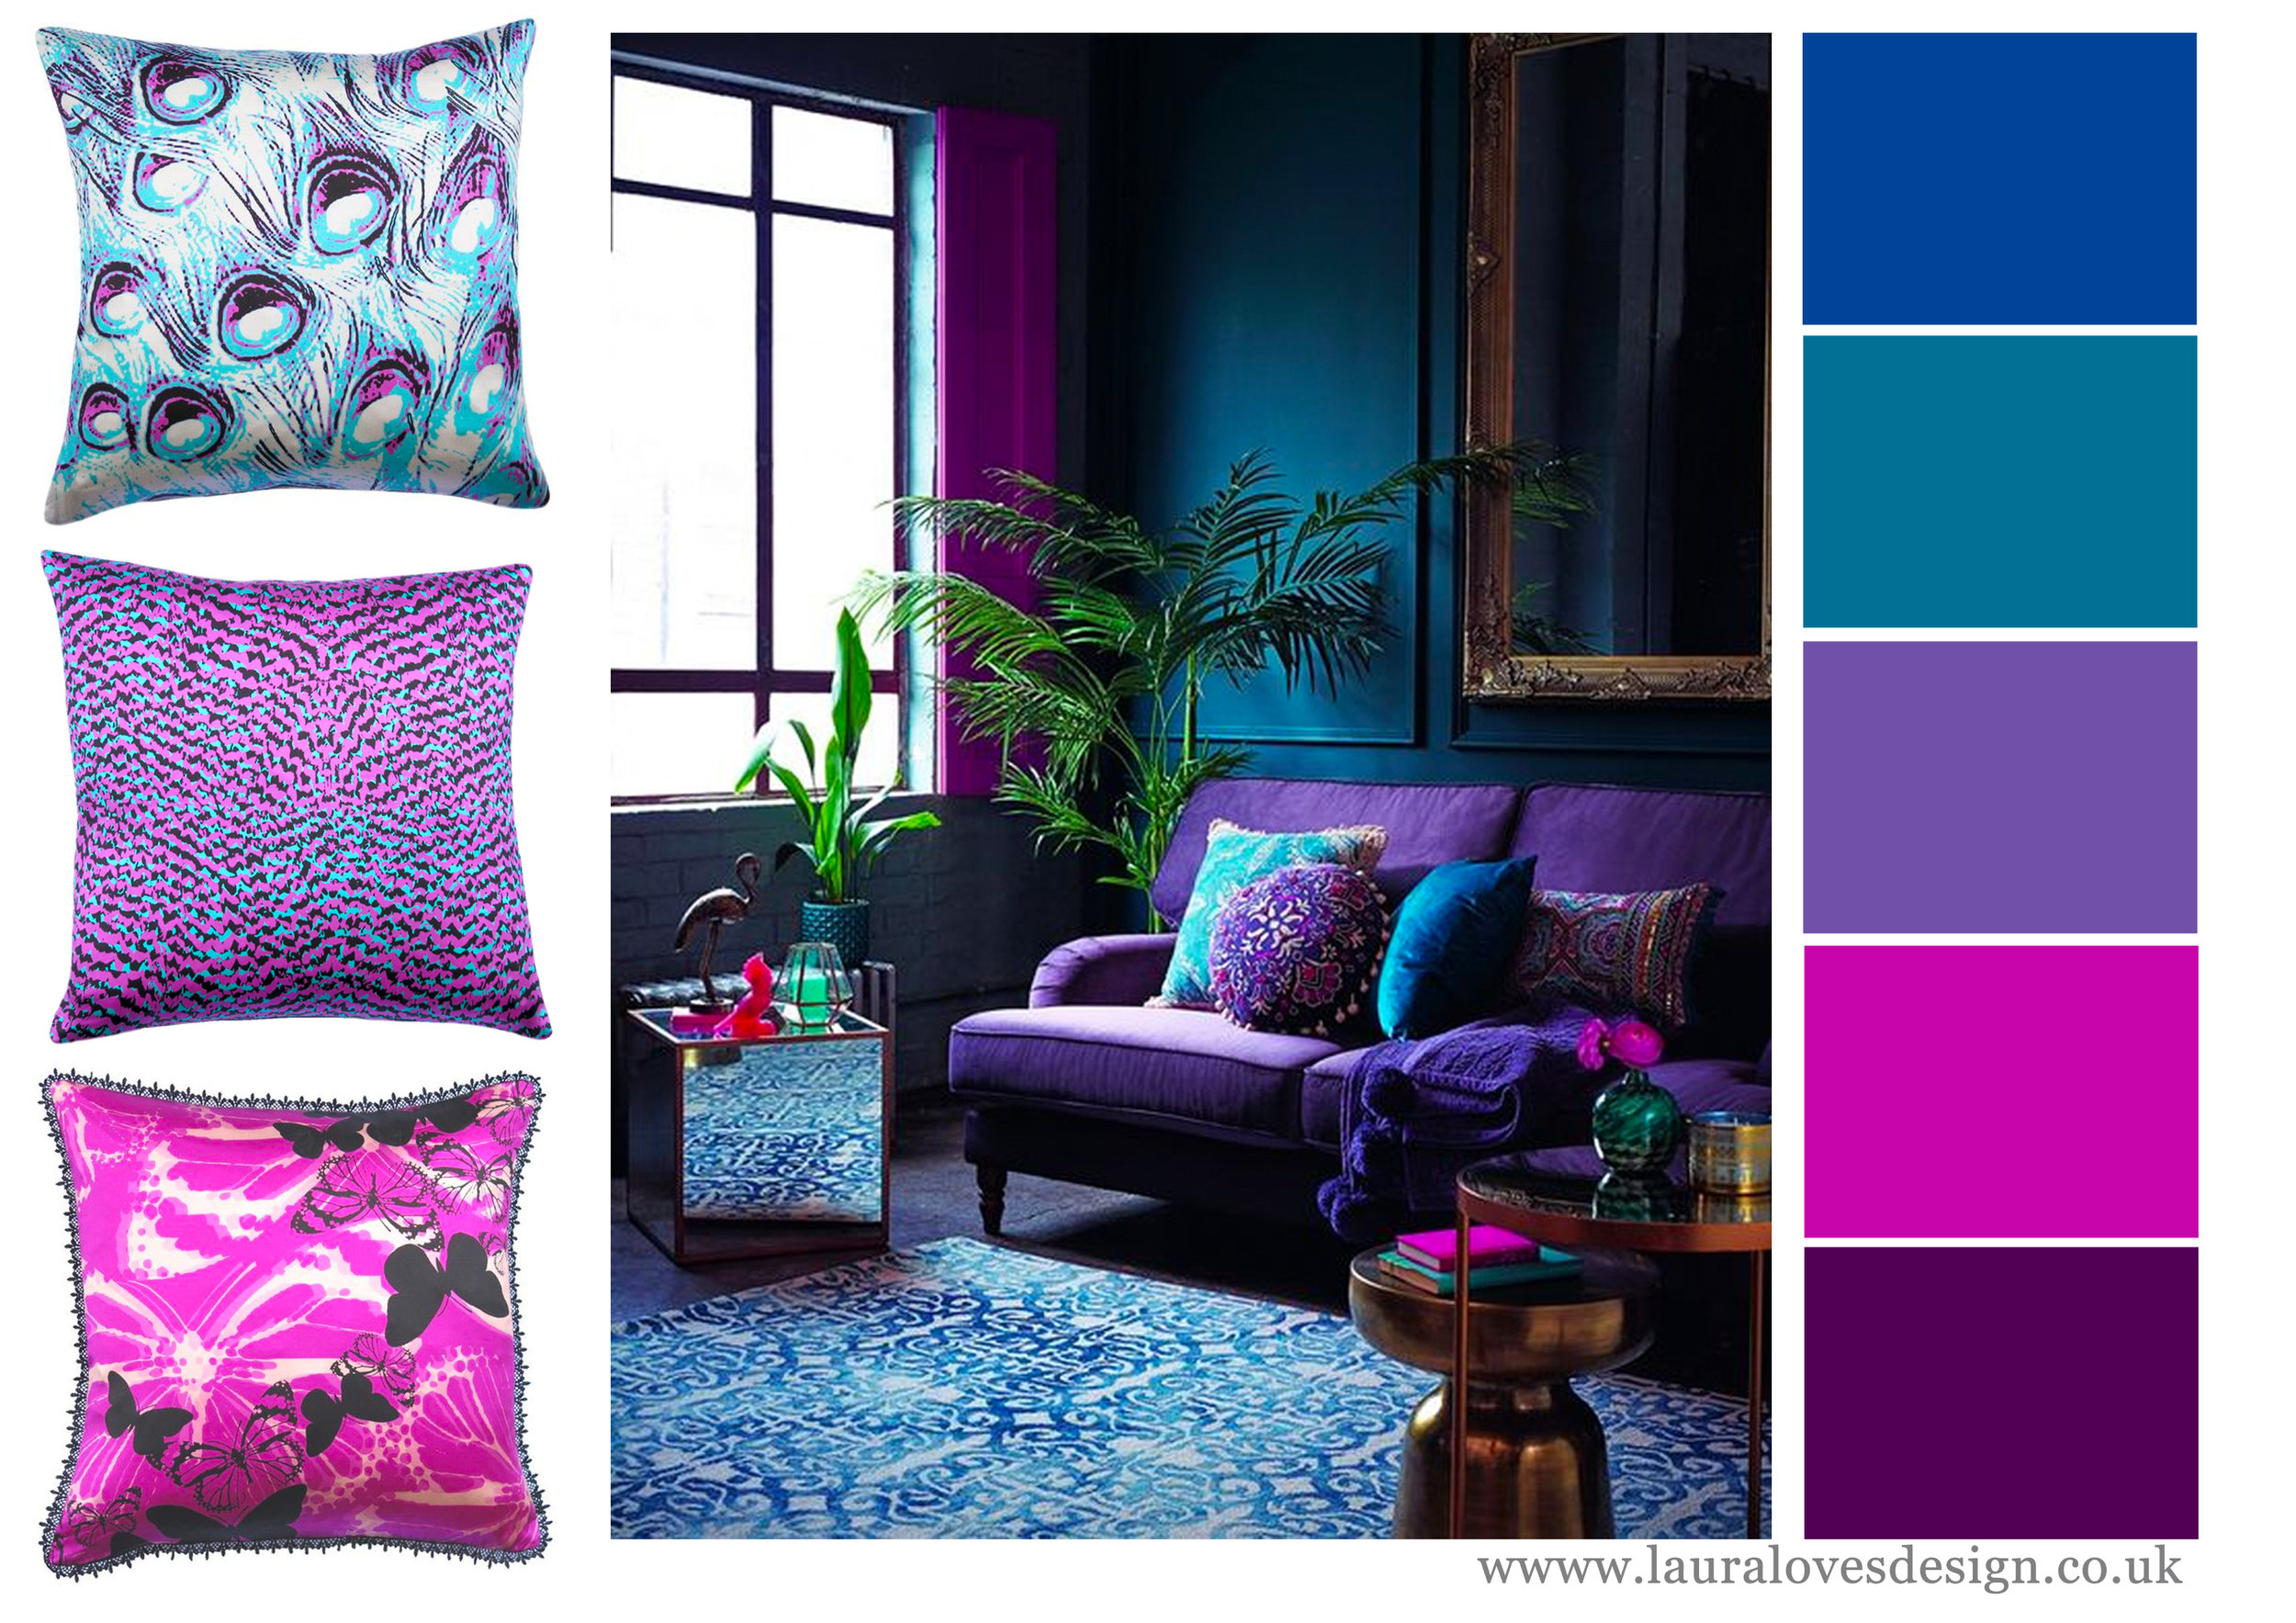 ultra-violet-peacock-turquoise-colours-2018-peacok-cushions-silk-cushions-interior-design-fabric-designed-by-lauraloves-design-hand-made-hand-designed.jpg